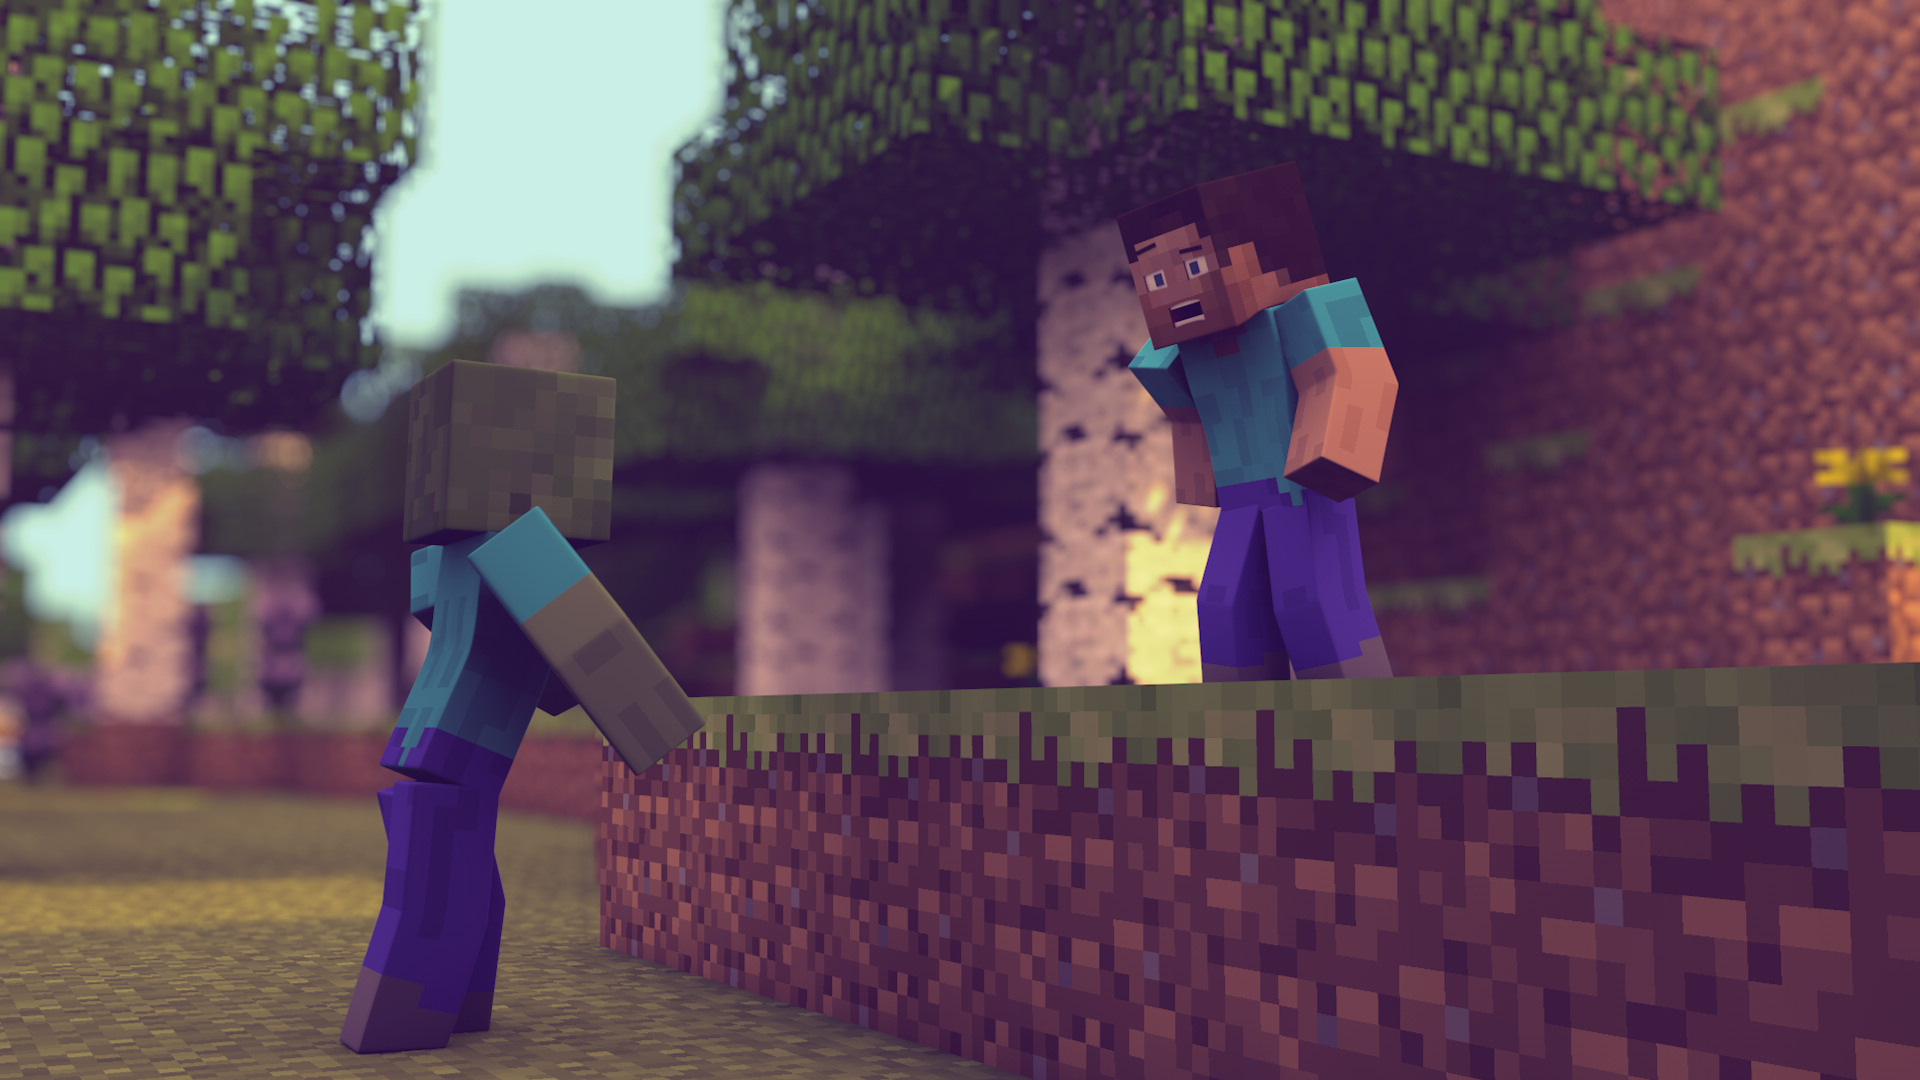 Cool Wallpaper Minecraft Love - a_zombie___minecraft_1920x1080_wallpaper__by_xifrost21-d7ahrf5  Perfect Image Reference_604516.png